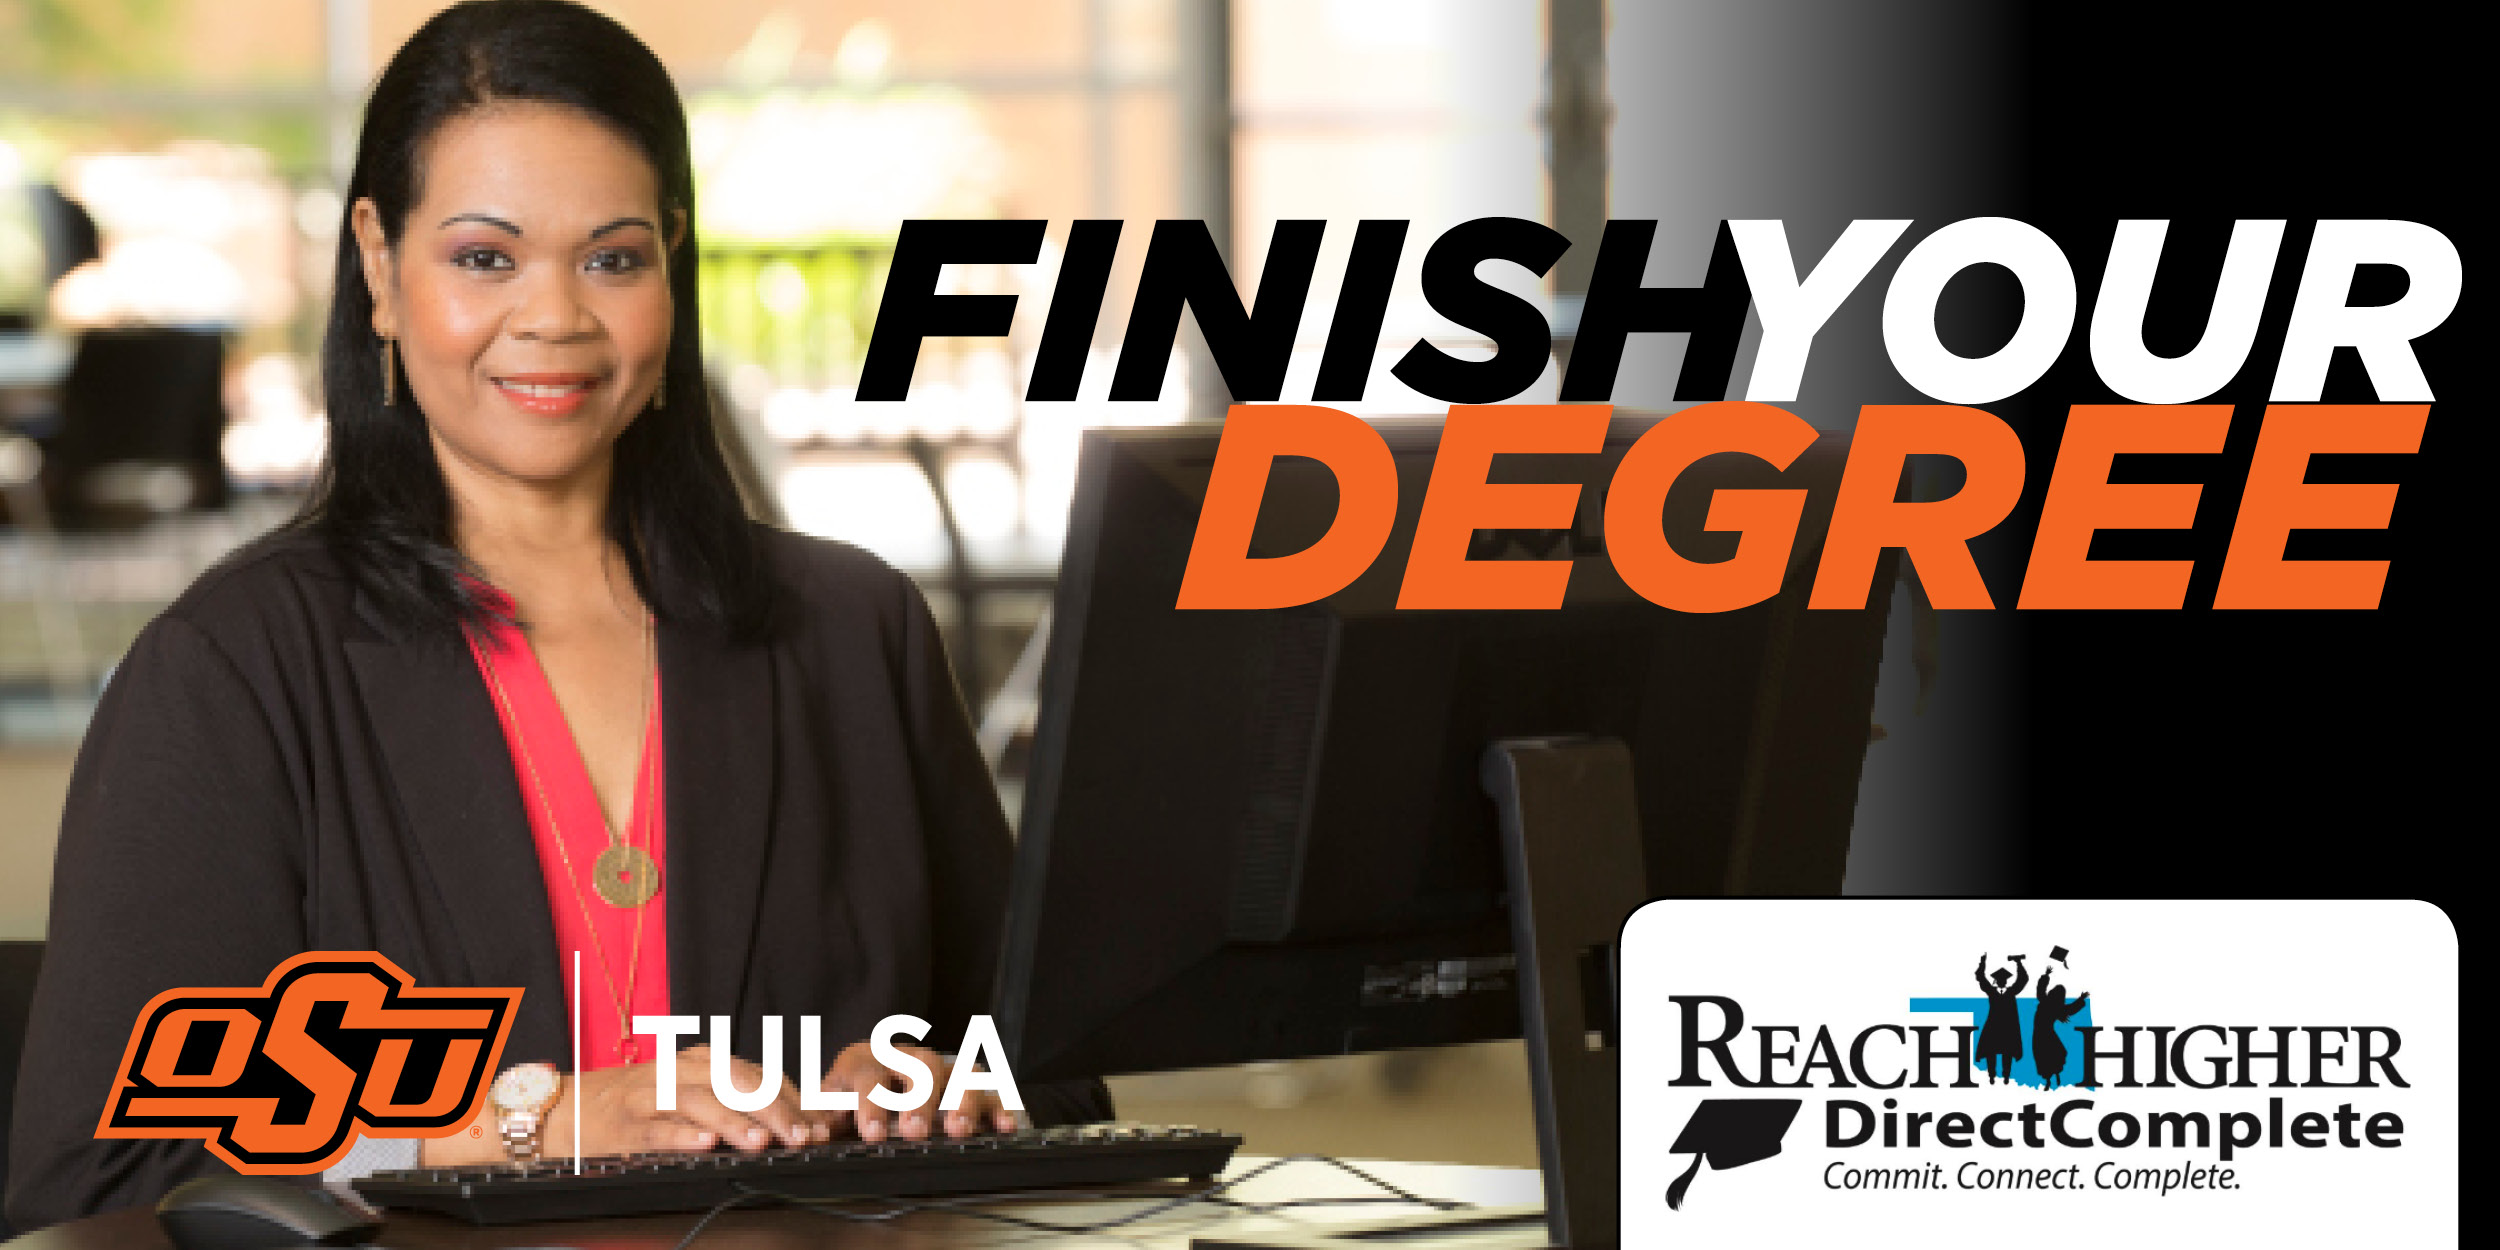 Finish Your Degree - Reach Higher DirectComplete